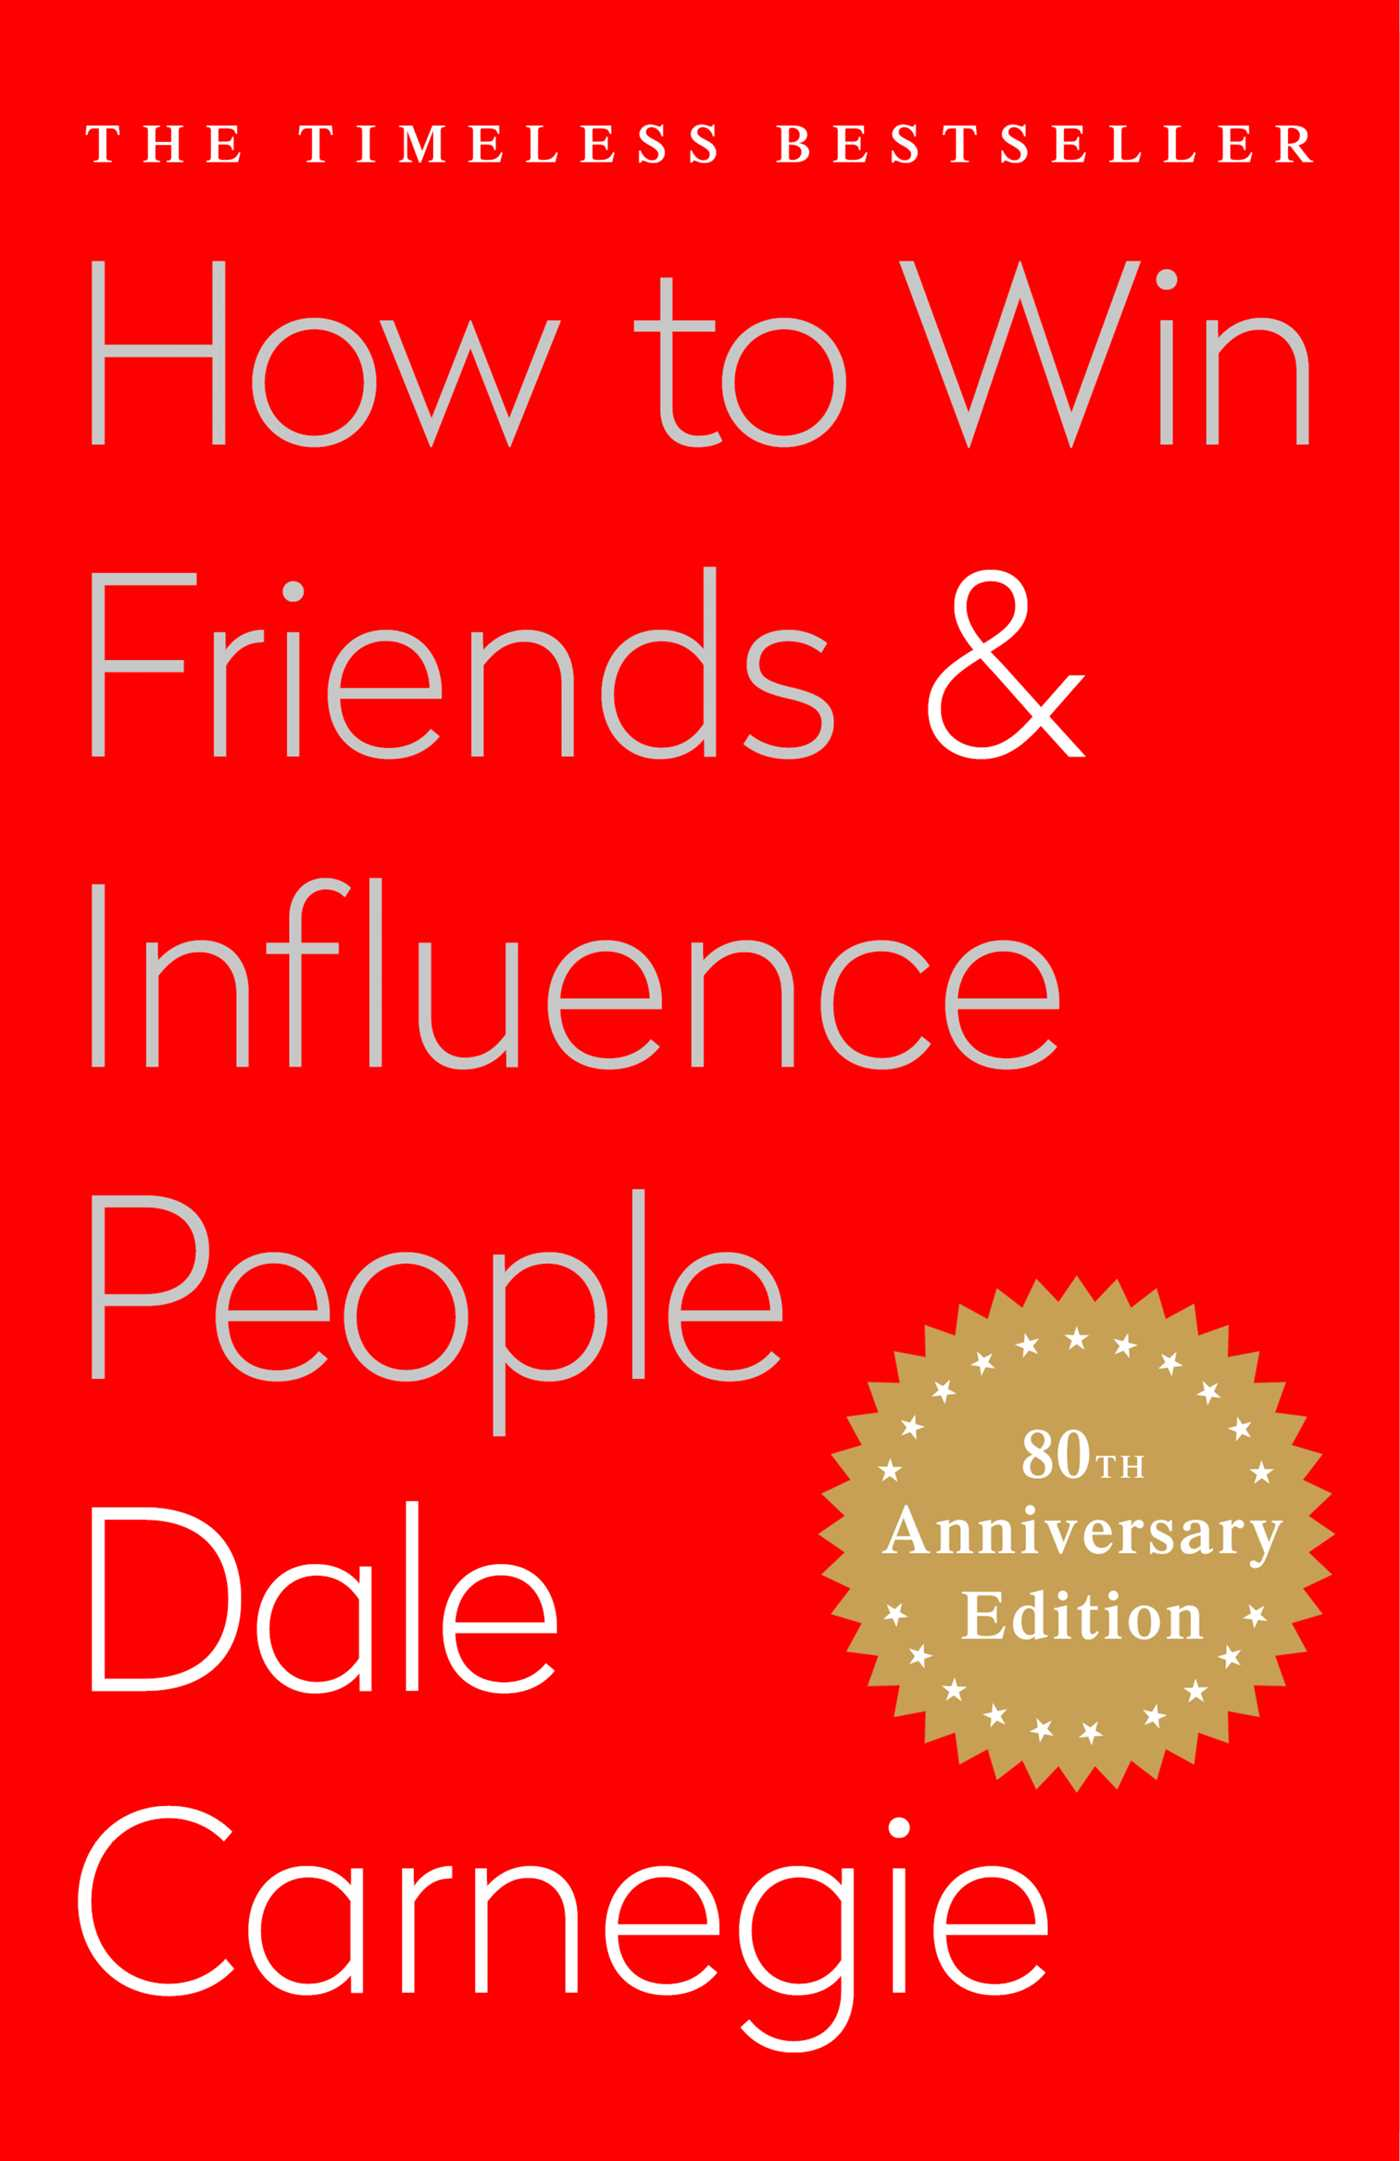 How-to-win-friends-and-influence-people-9781451621716_hr